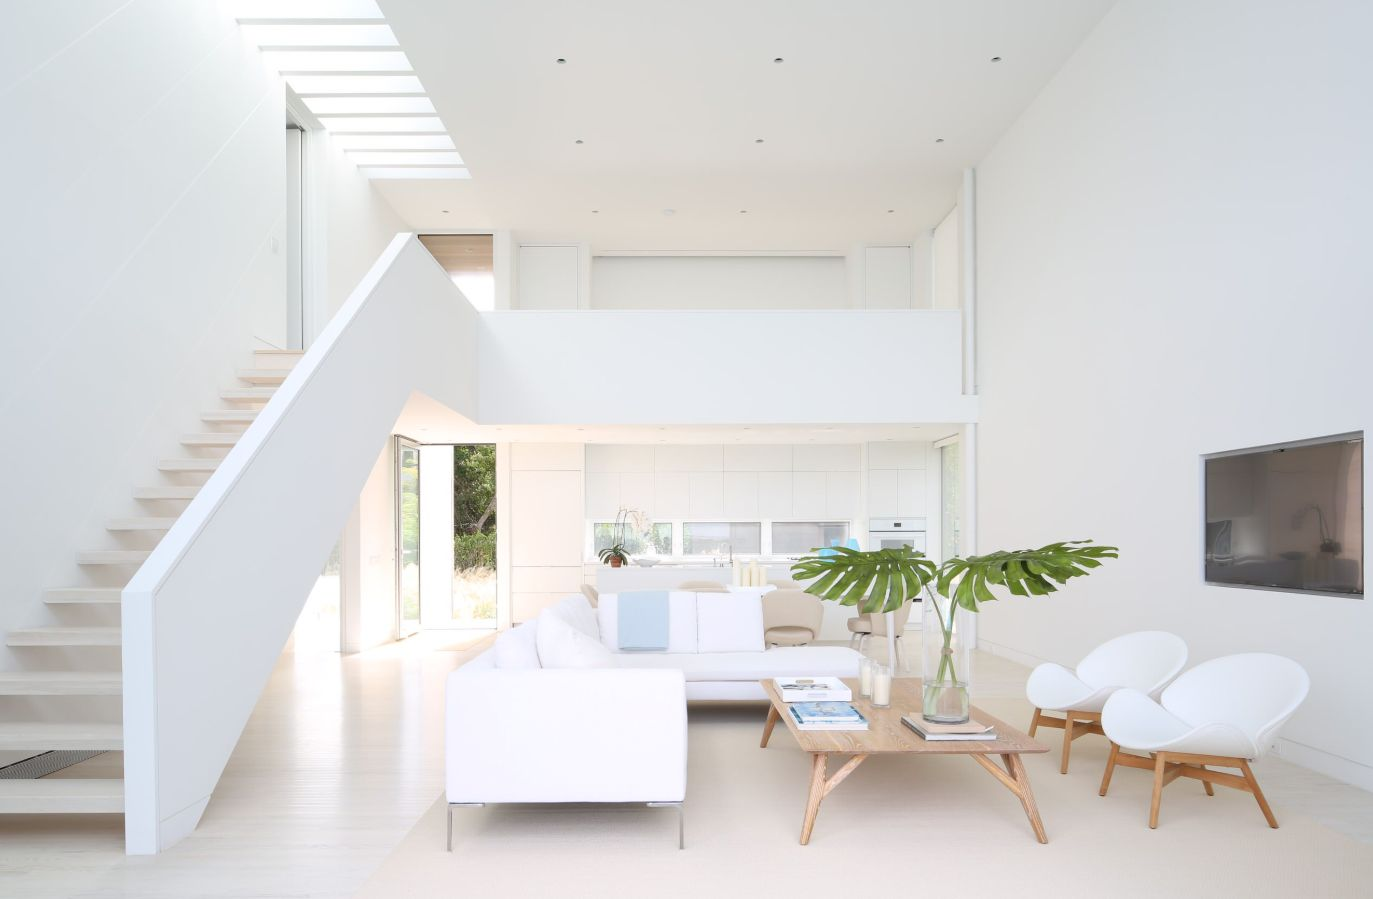 Pure white furniture and matching walls, floors and ceilings make this space seem bright despite the lack of windows